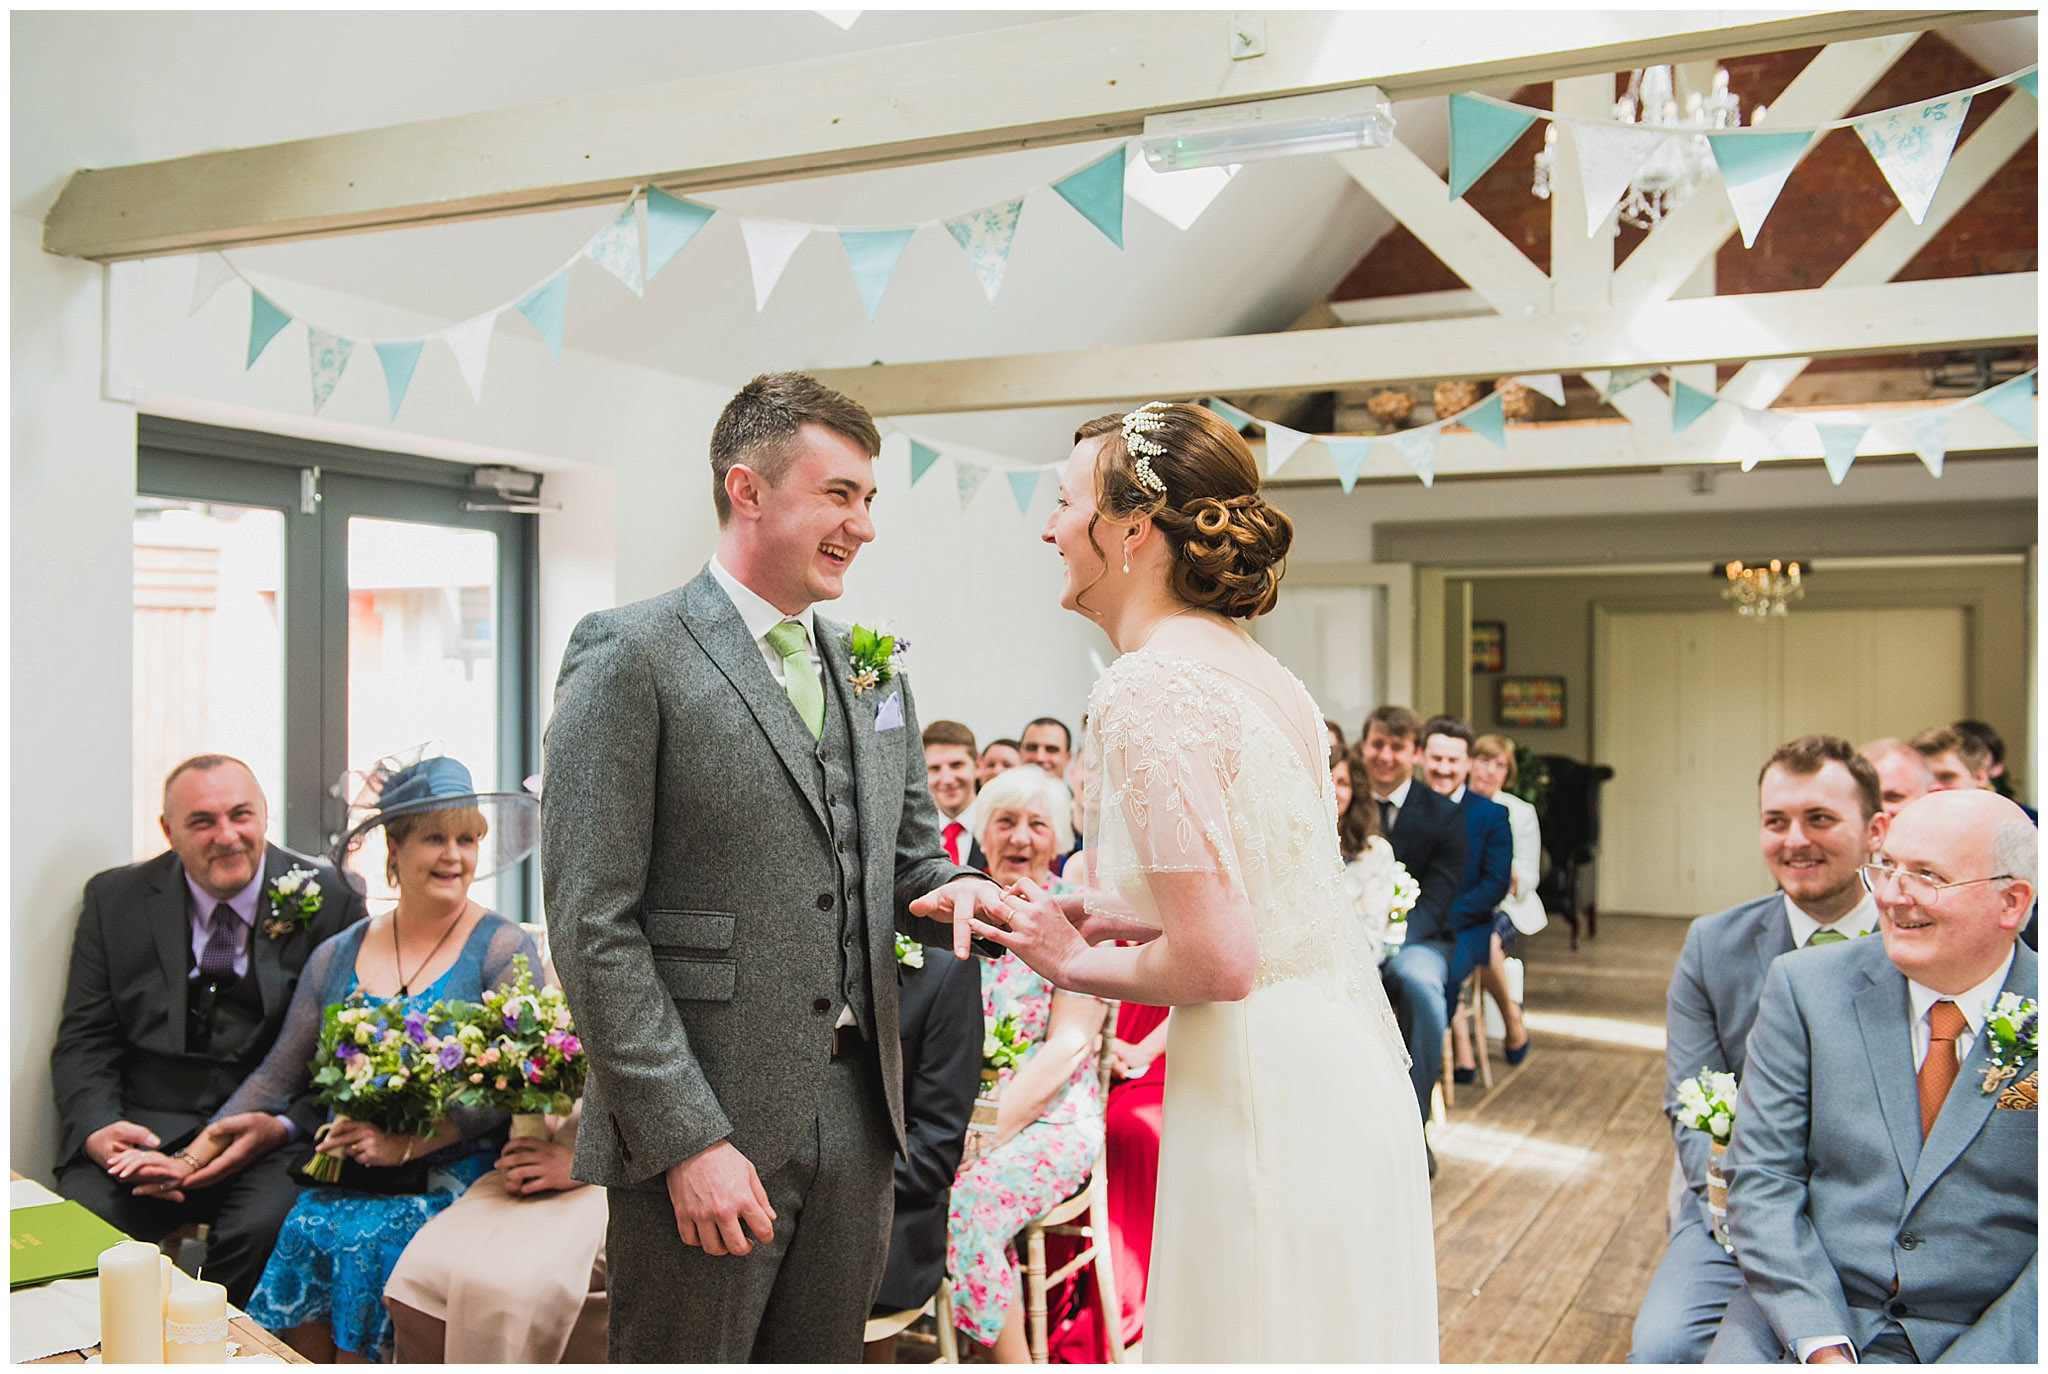 Sarah-&-Dan-The-Old-Vicarage-Wedding-Venue-Dorset-Photographer-17